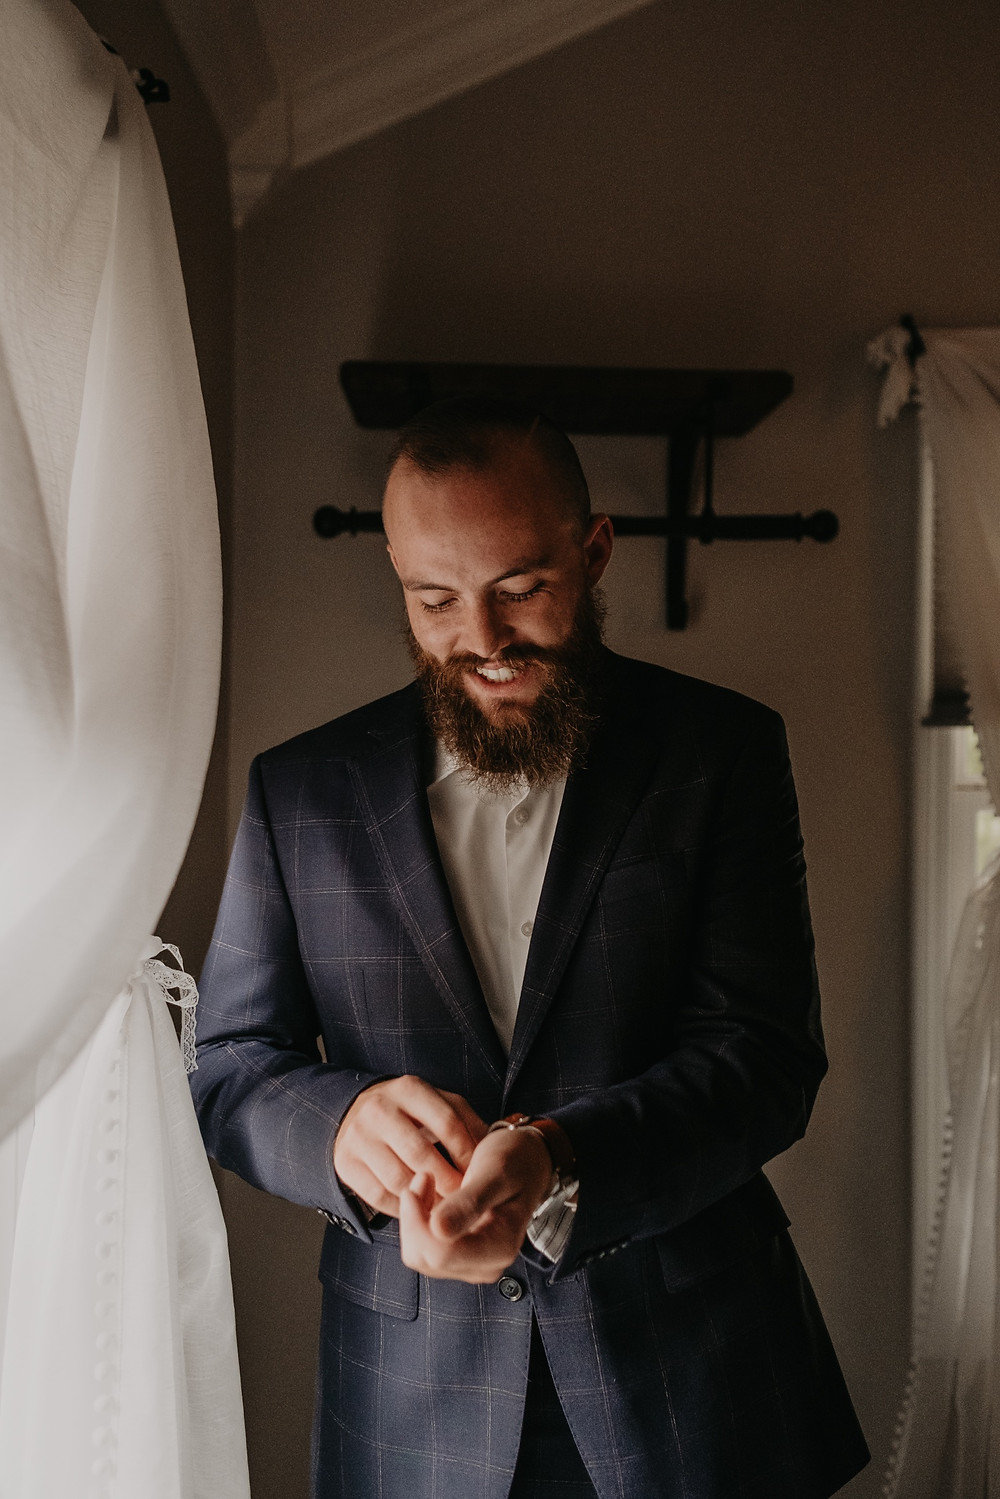 Groom adjusting cuff links before wedding ceremony. Photographed by Nicole Leanne Photography.